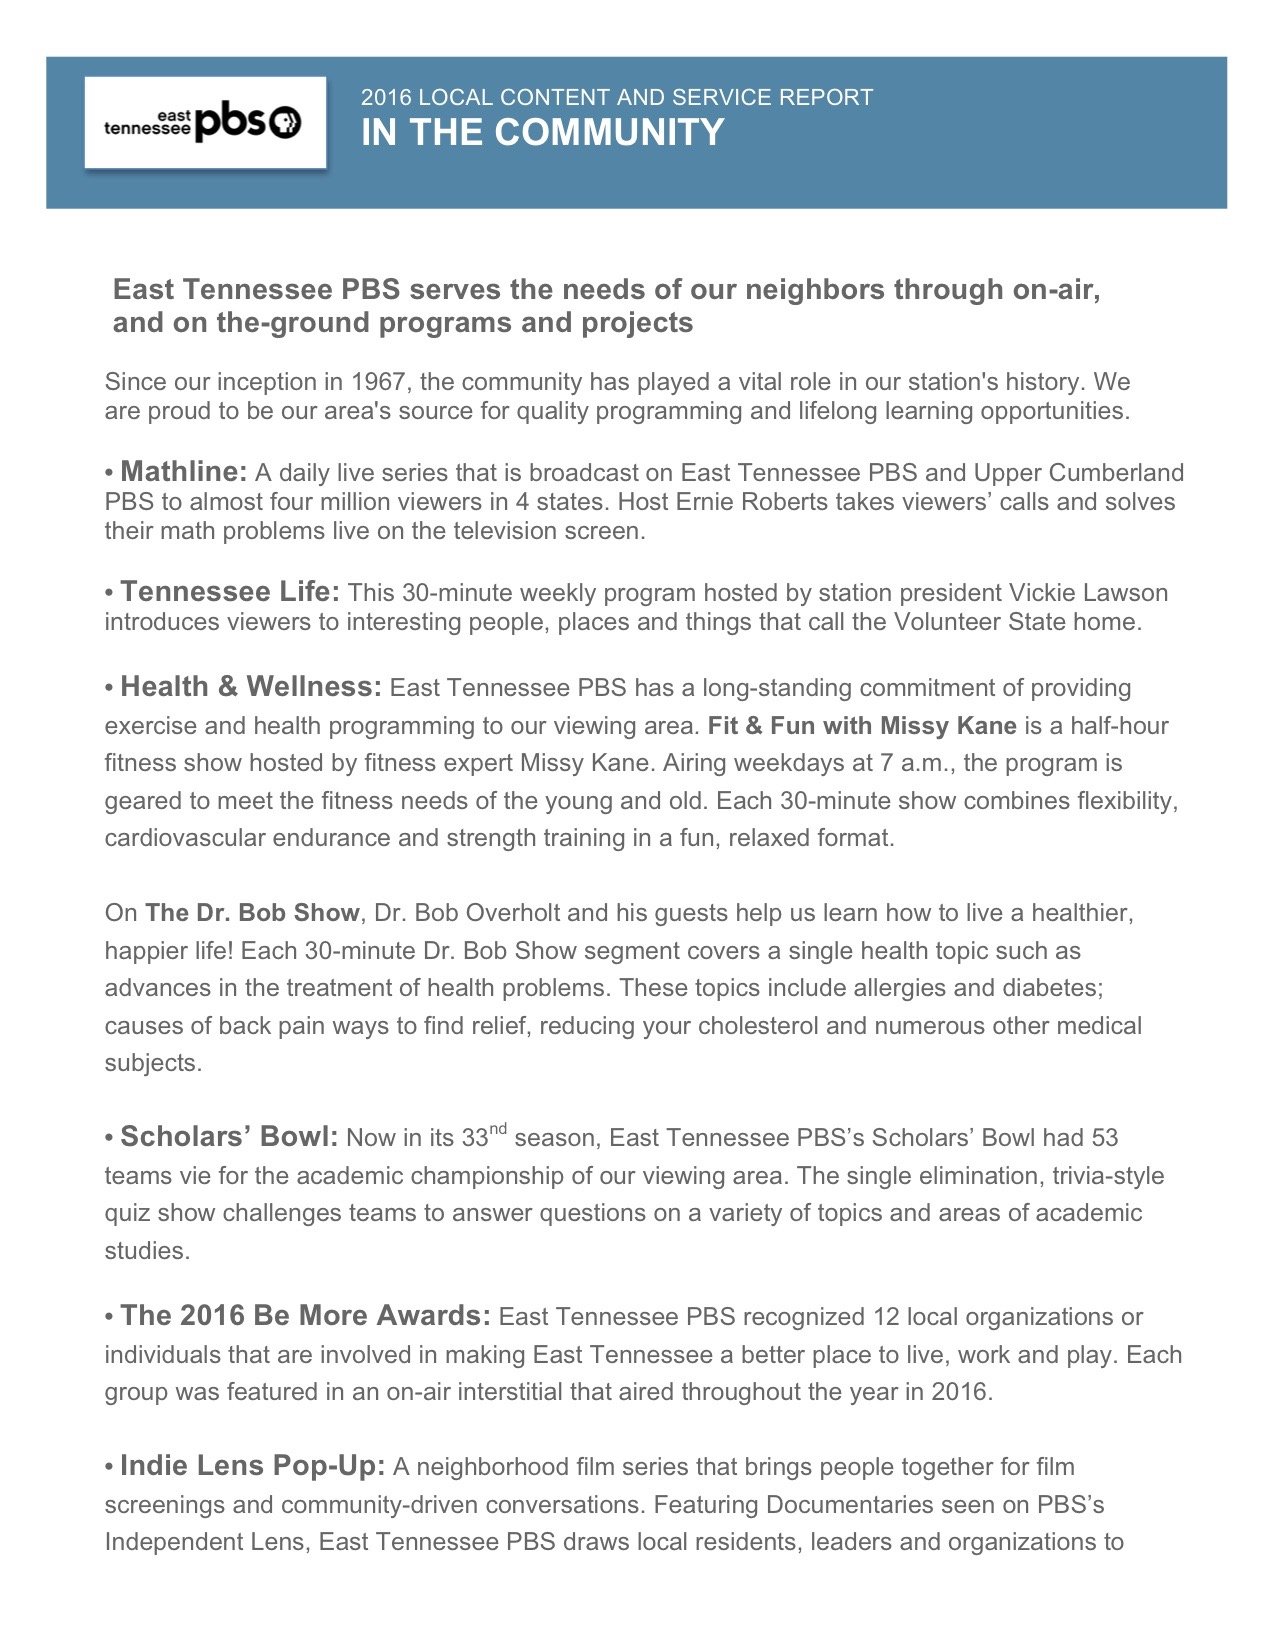 2016 Local Content and Service Report Page 2.jpg